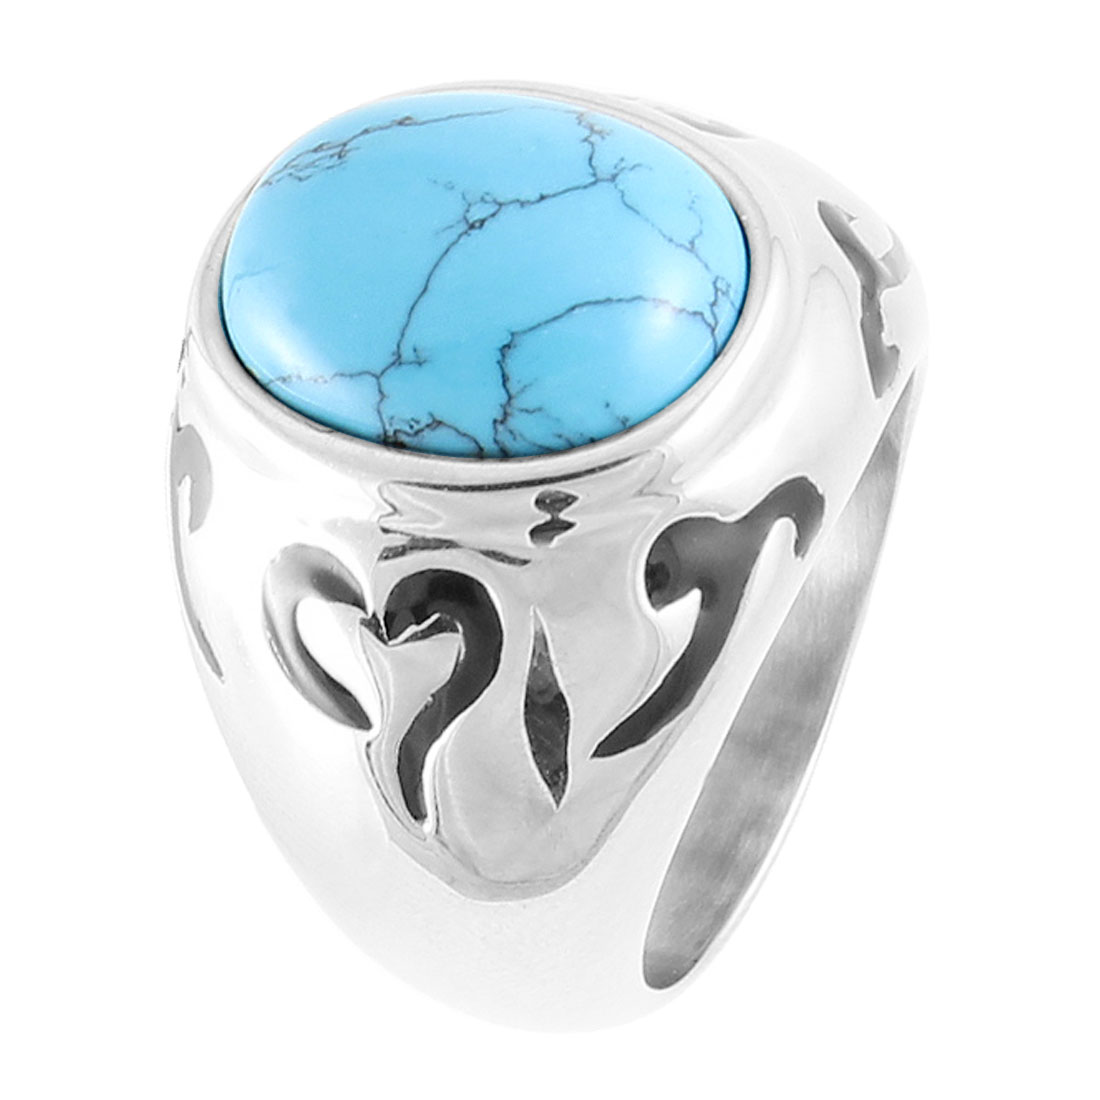 US 9 Plastic Baby Blue Crystal Detail Stainless Steel Finger Ring for Men